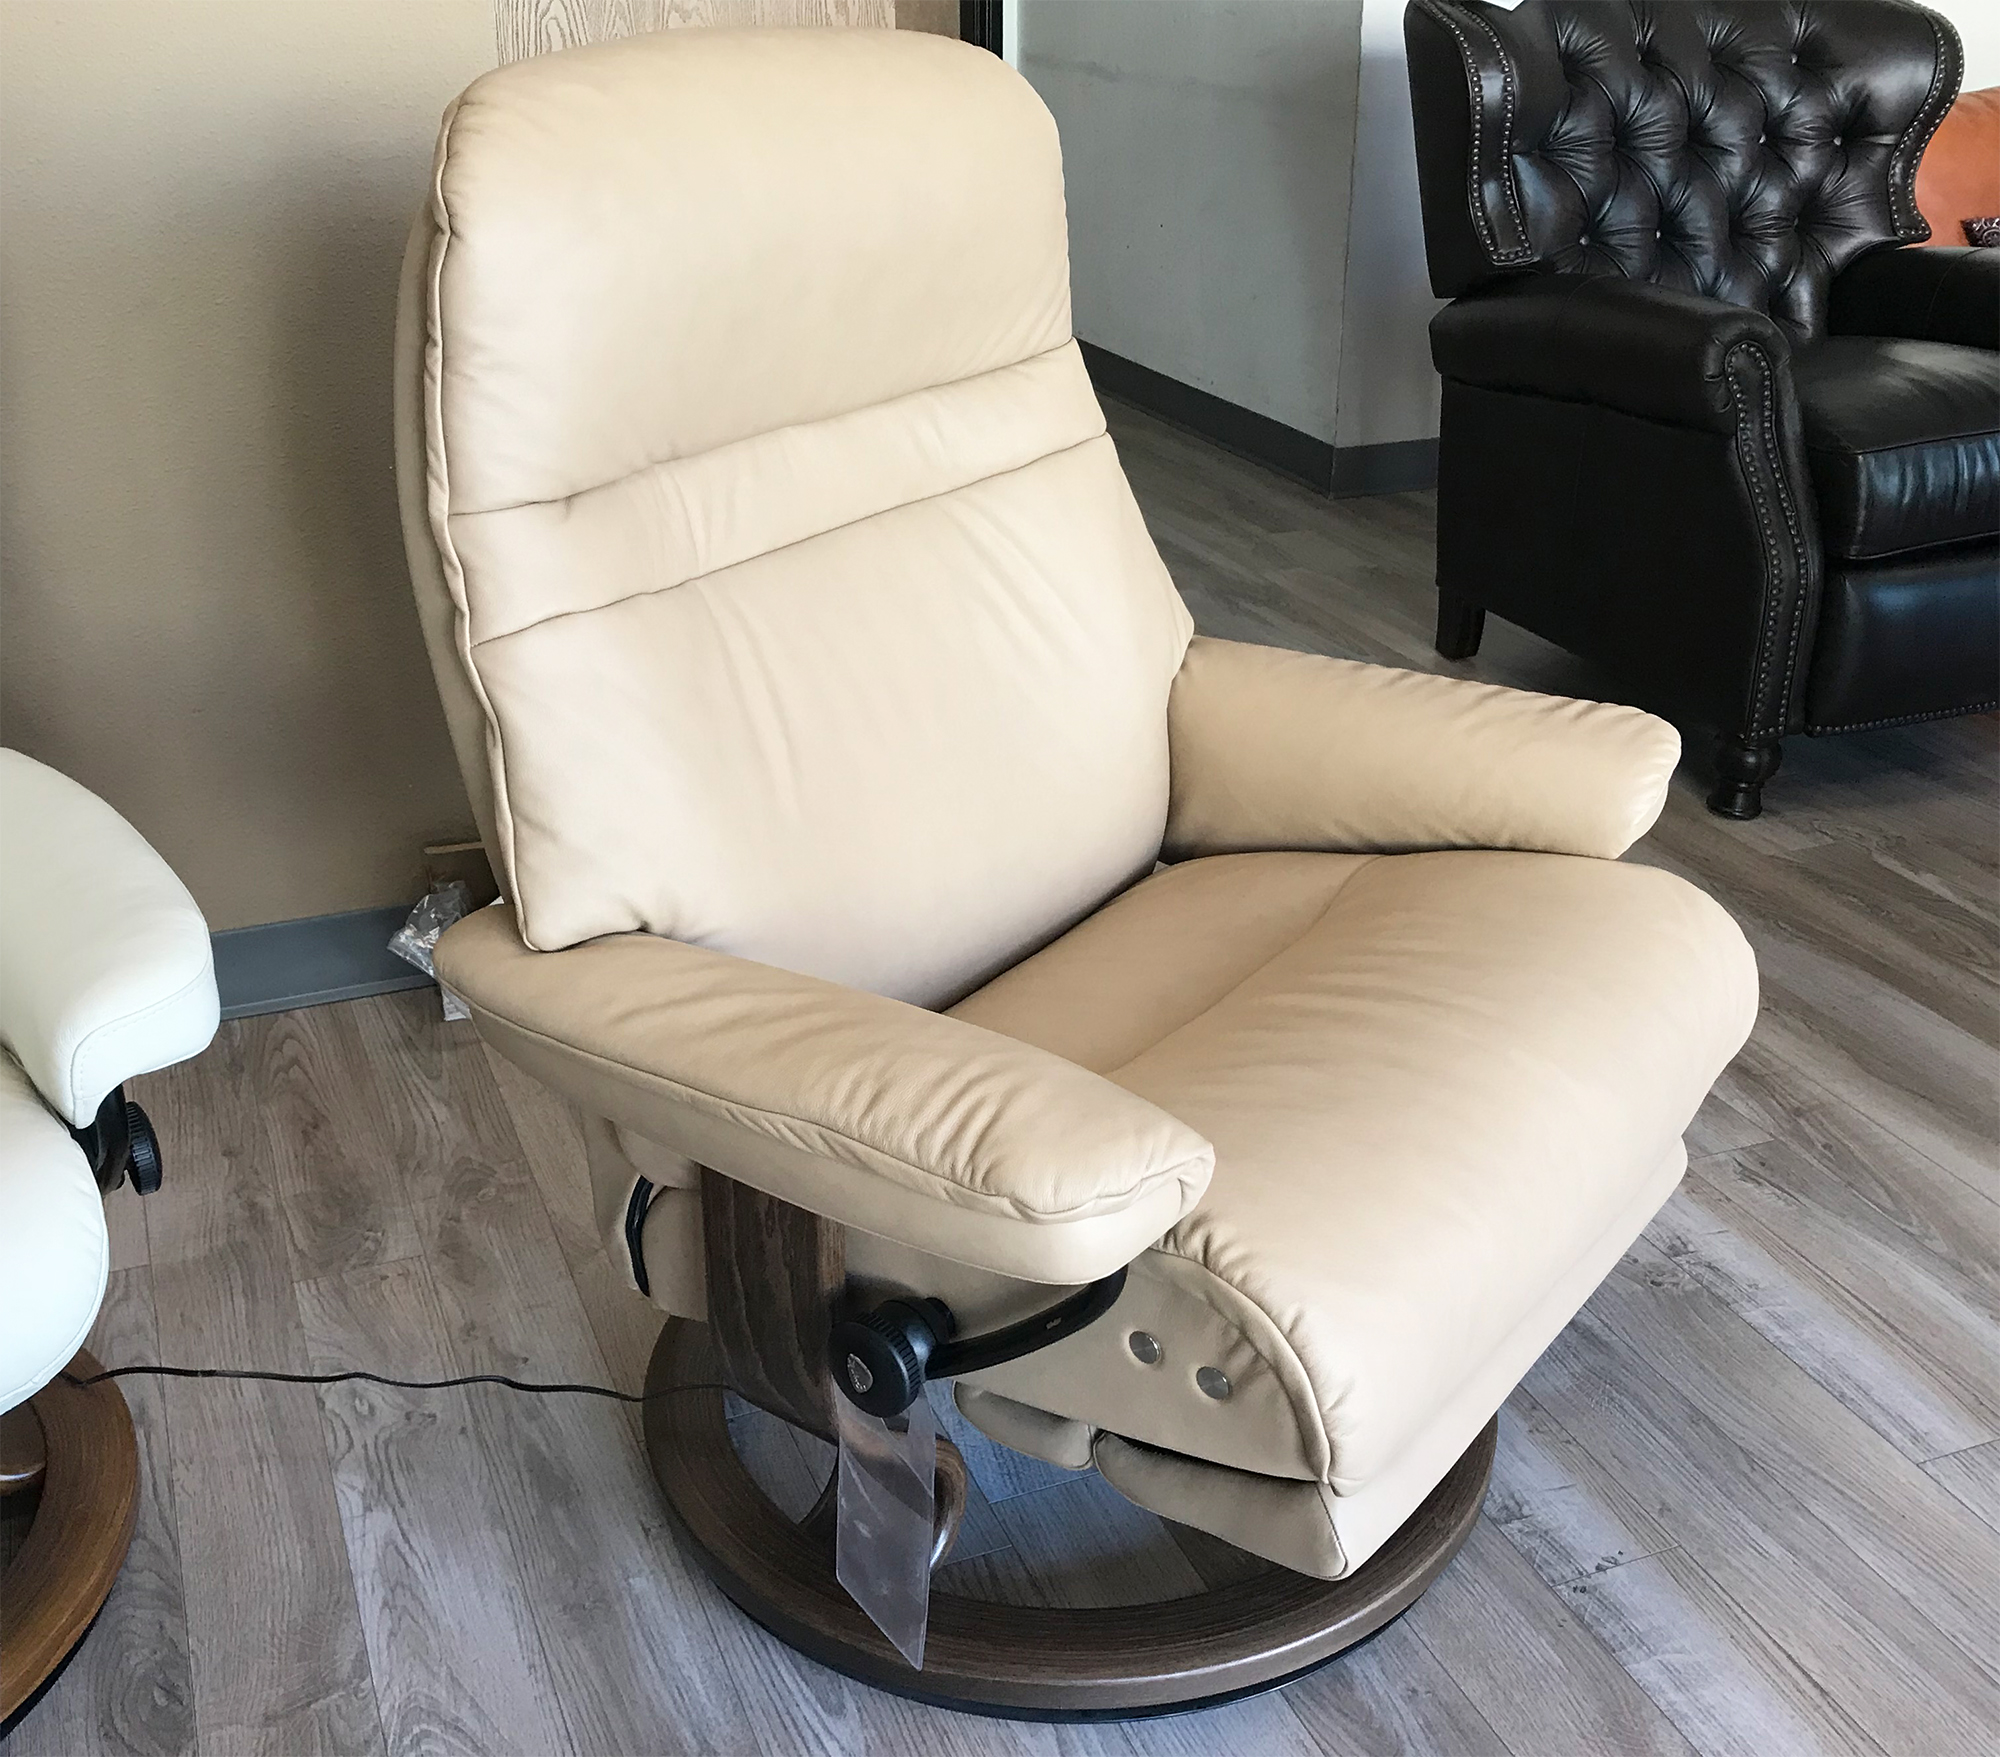 Stressless Nordic Legcomfort Stressless Sunrise Legcomfort Recliner Chair With Footrest In Paloma Sand Leather By Ekornes